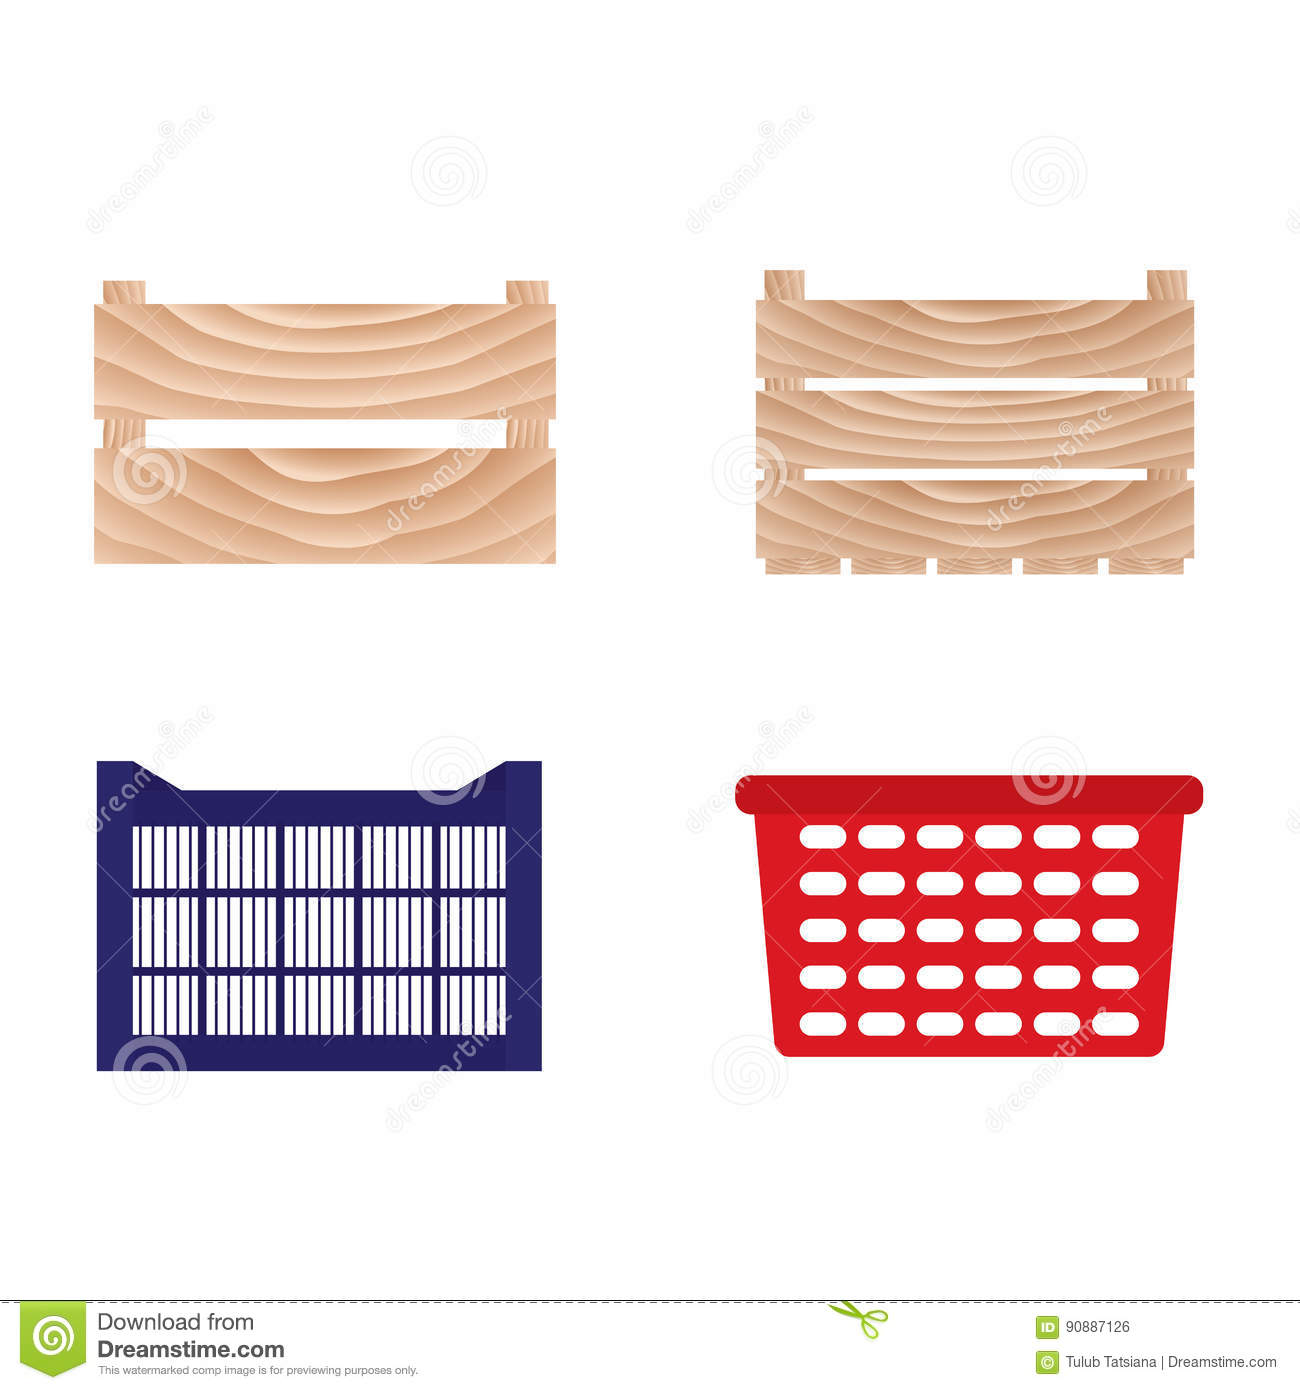 Wooden And Plastic Boxes For Vegetables And Fruits. Stock Vector